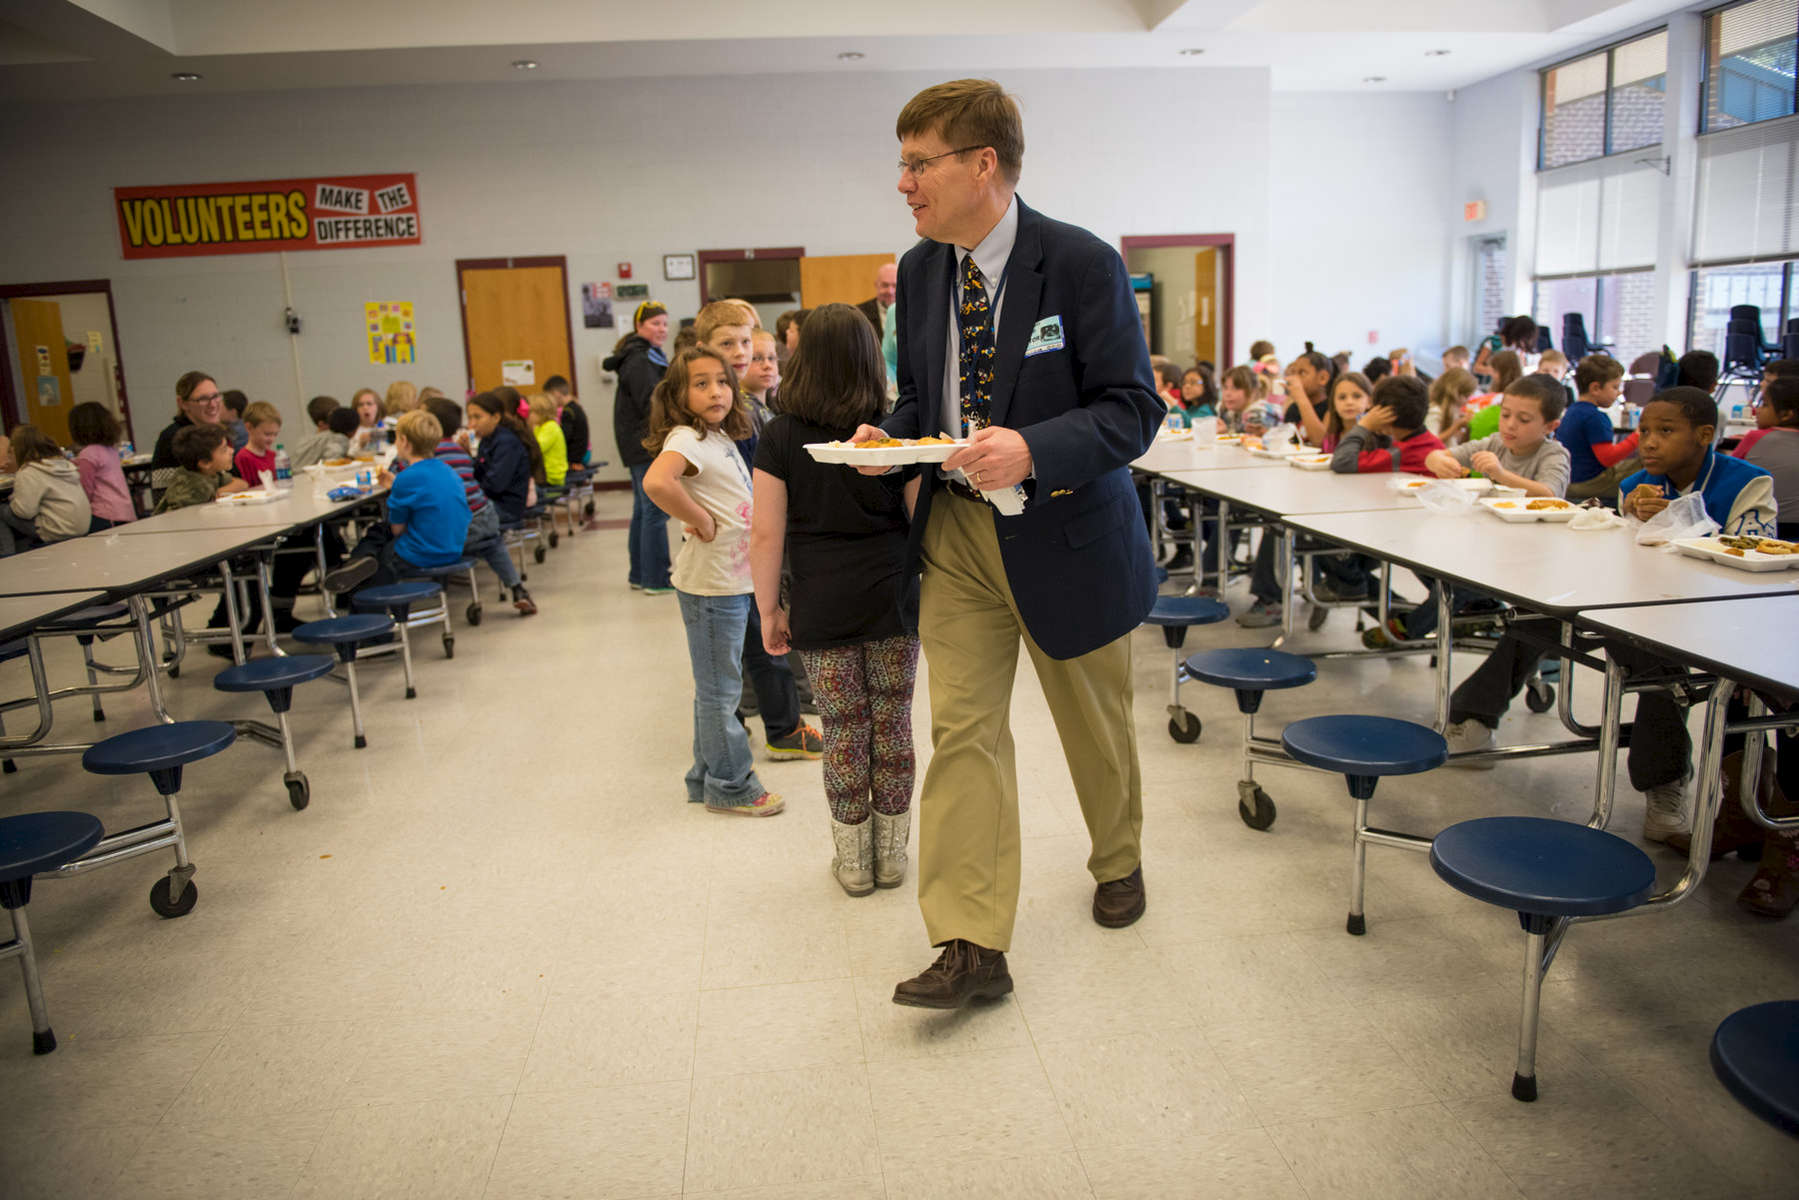 Third Place | Multiple PhotosSara Corce, The PilotMoore County School Superintendent Bob Grimesey walks to a lunch table in the cafeteria as he spends time with students on Tuesday, November 24, 2015 at Vass-Lakeview Elementary School in Vass, North Carolina.